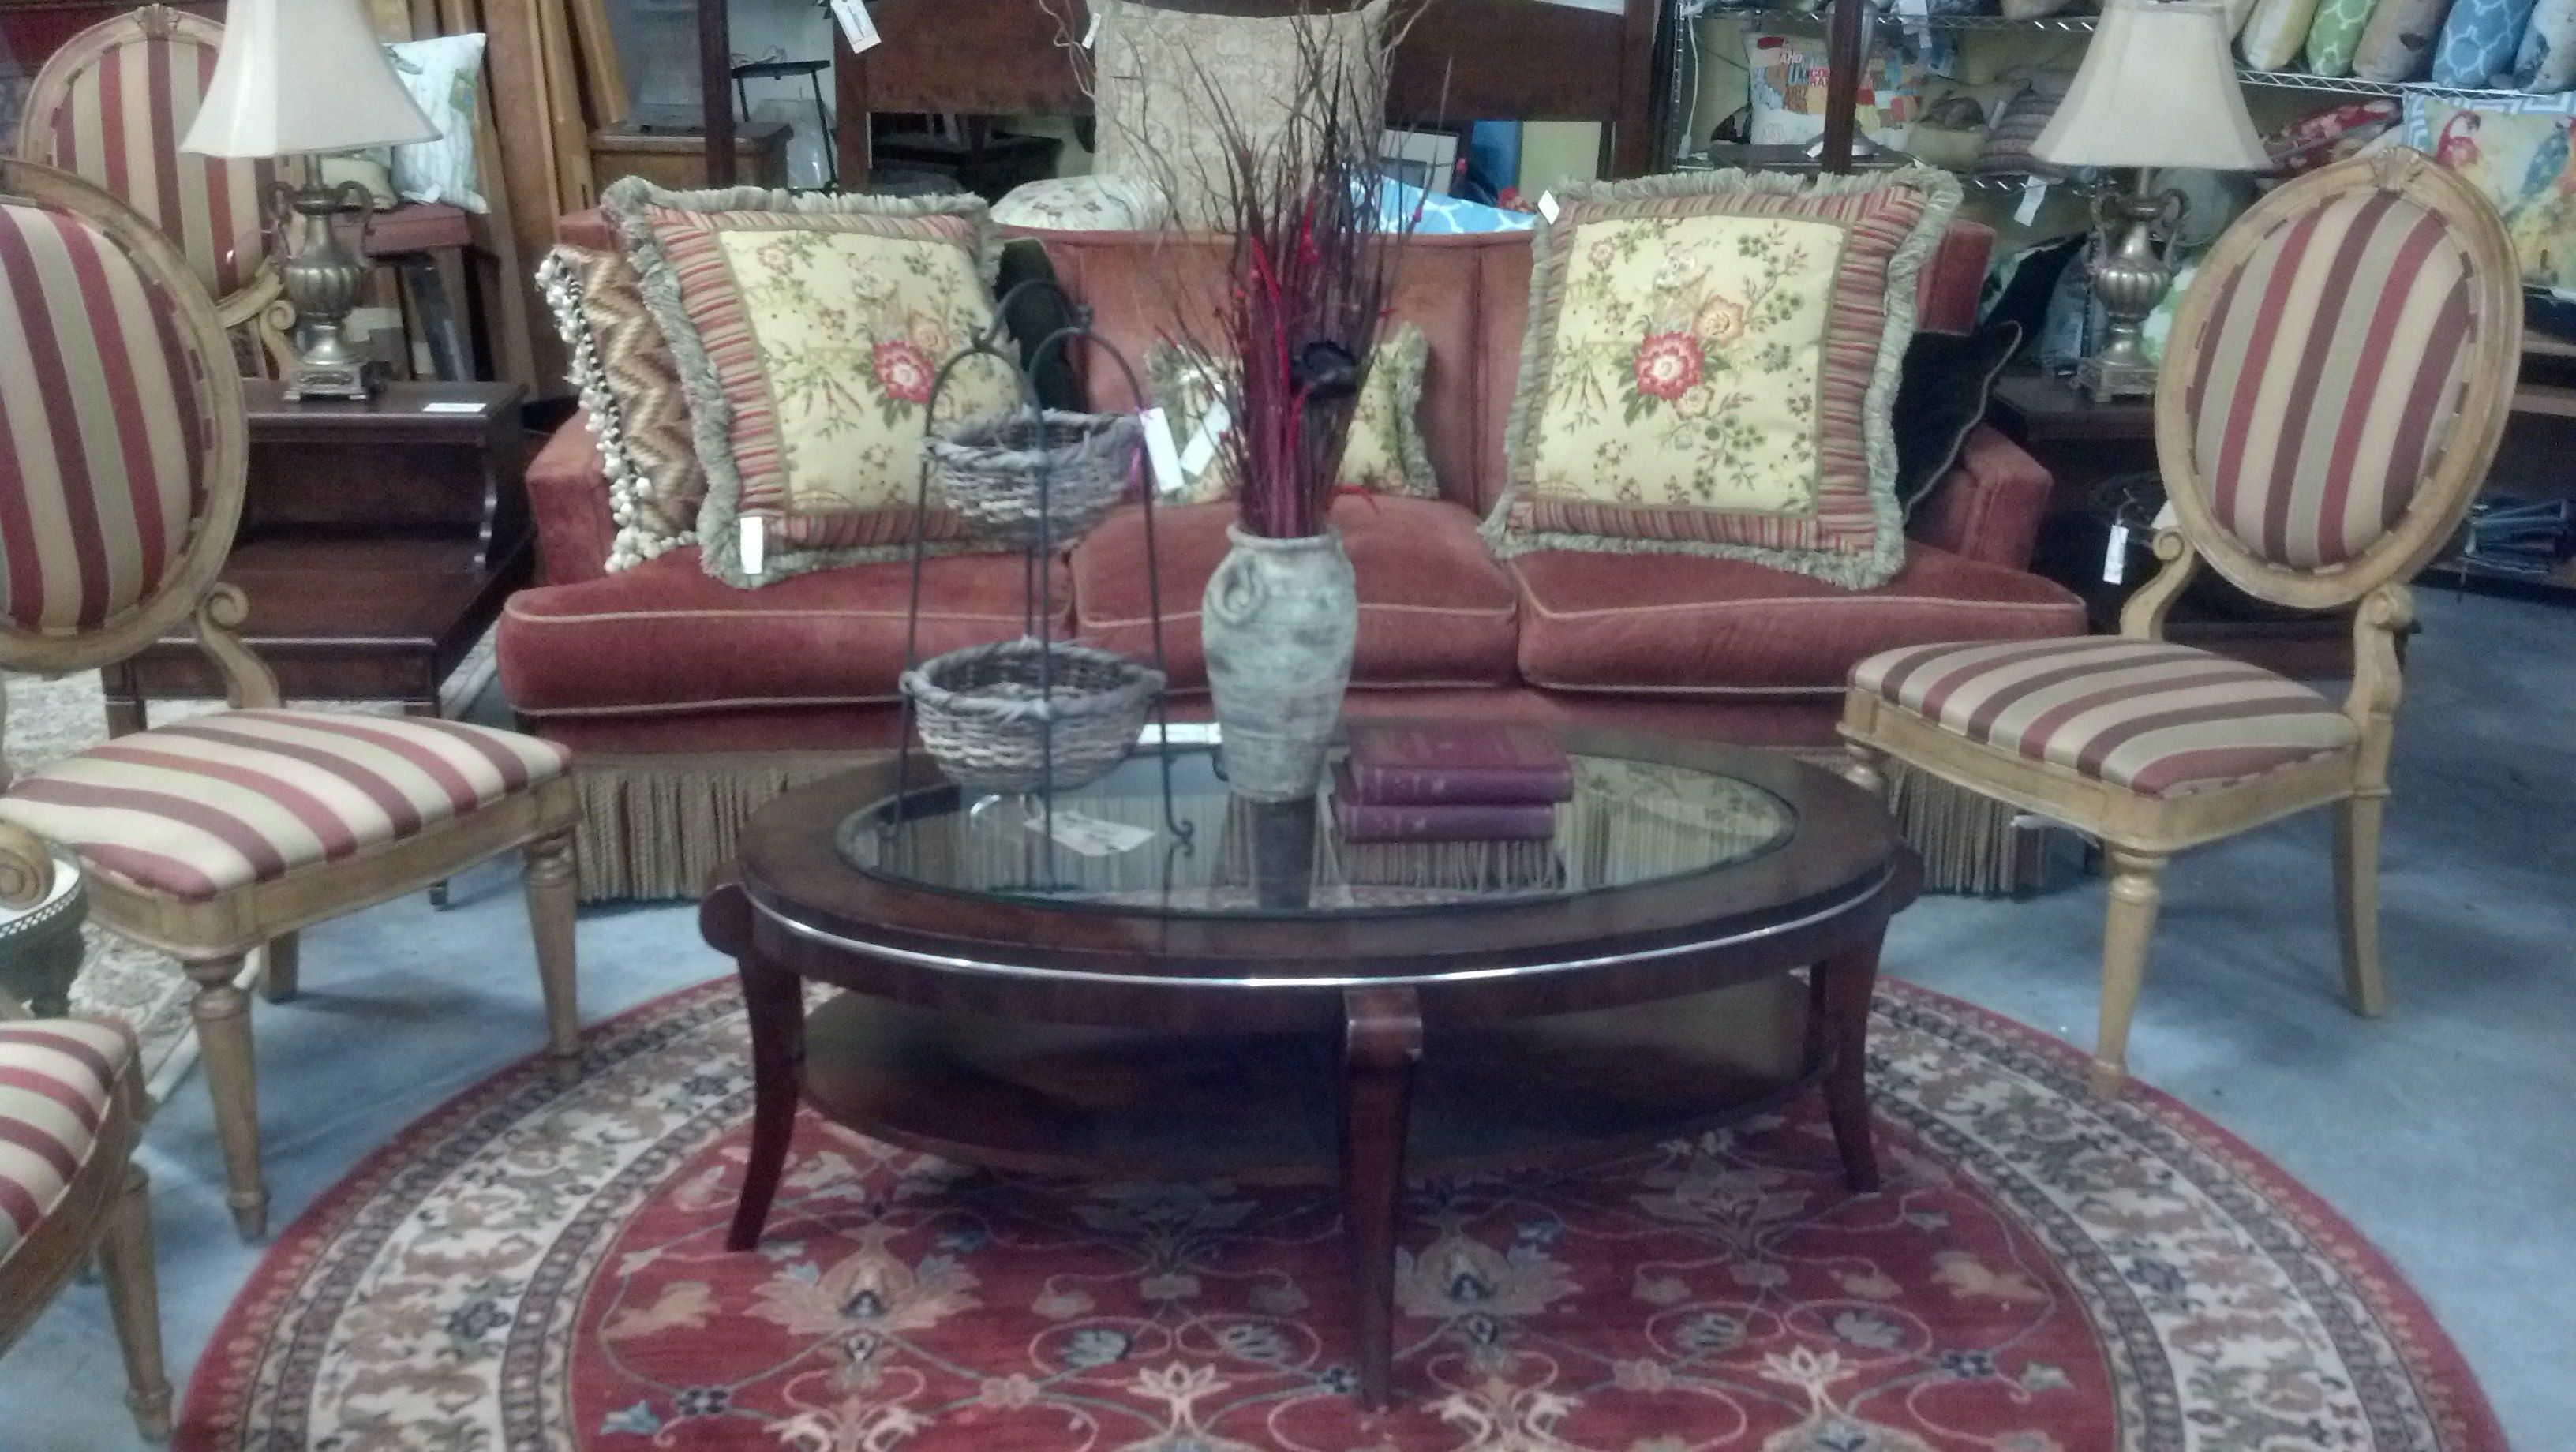 Put to her a whole new look with rugs sofa tables and chairs